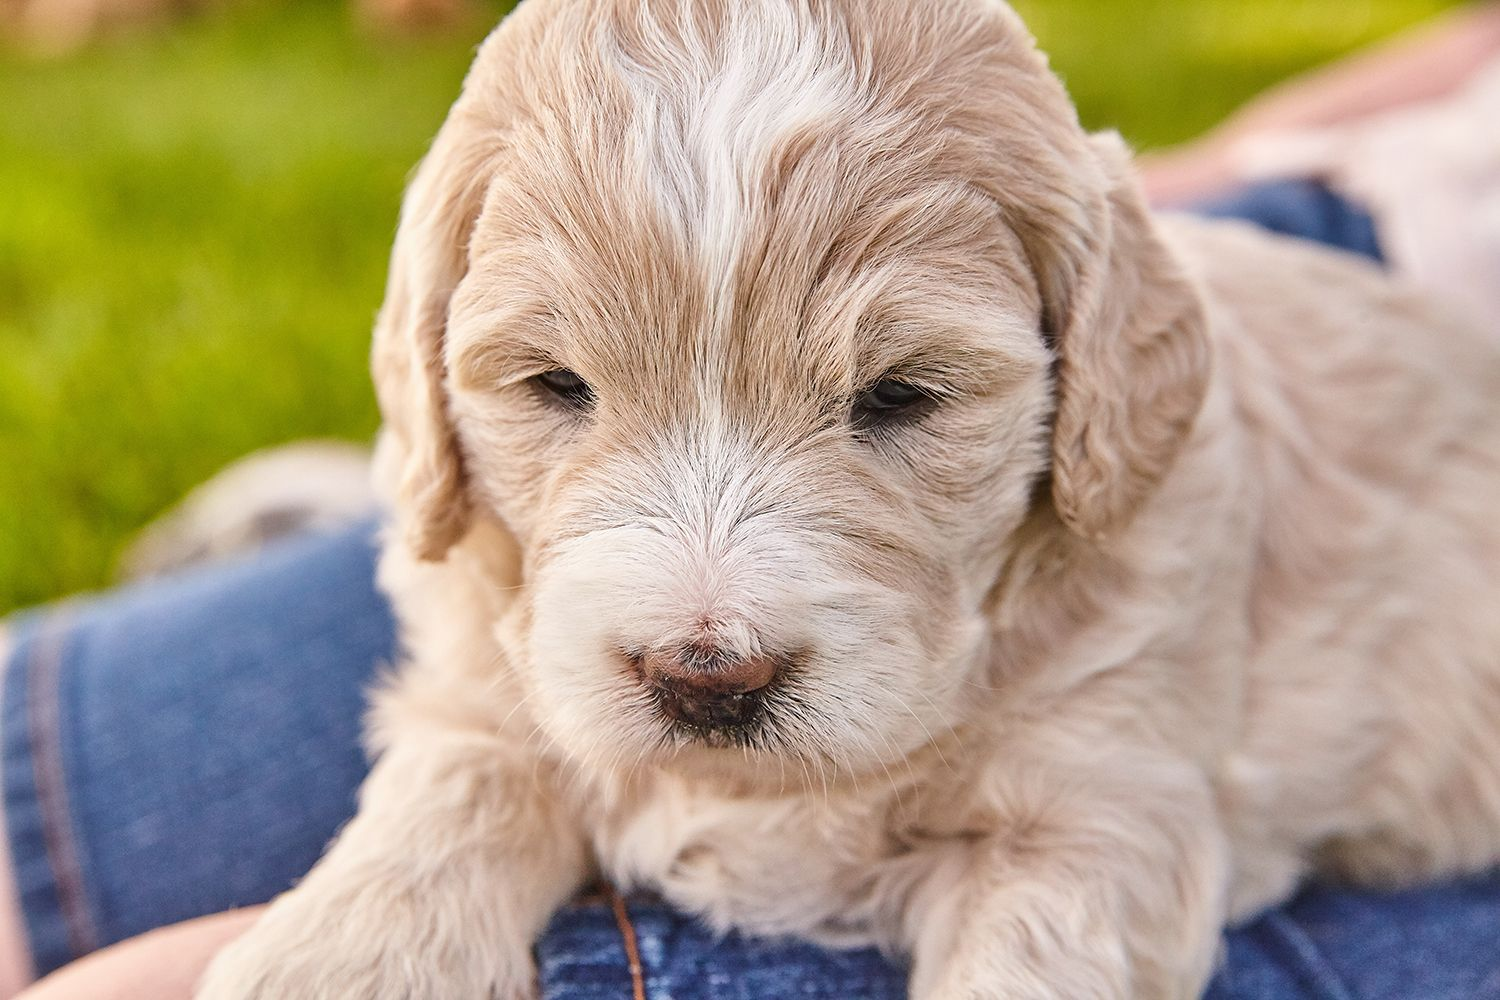 Puppies Puppies More Puppies We Have Several Litters Coming Of Age And One With Newborns If You Re Looking To Adopt Puppies Golden Retriever Labradoodle